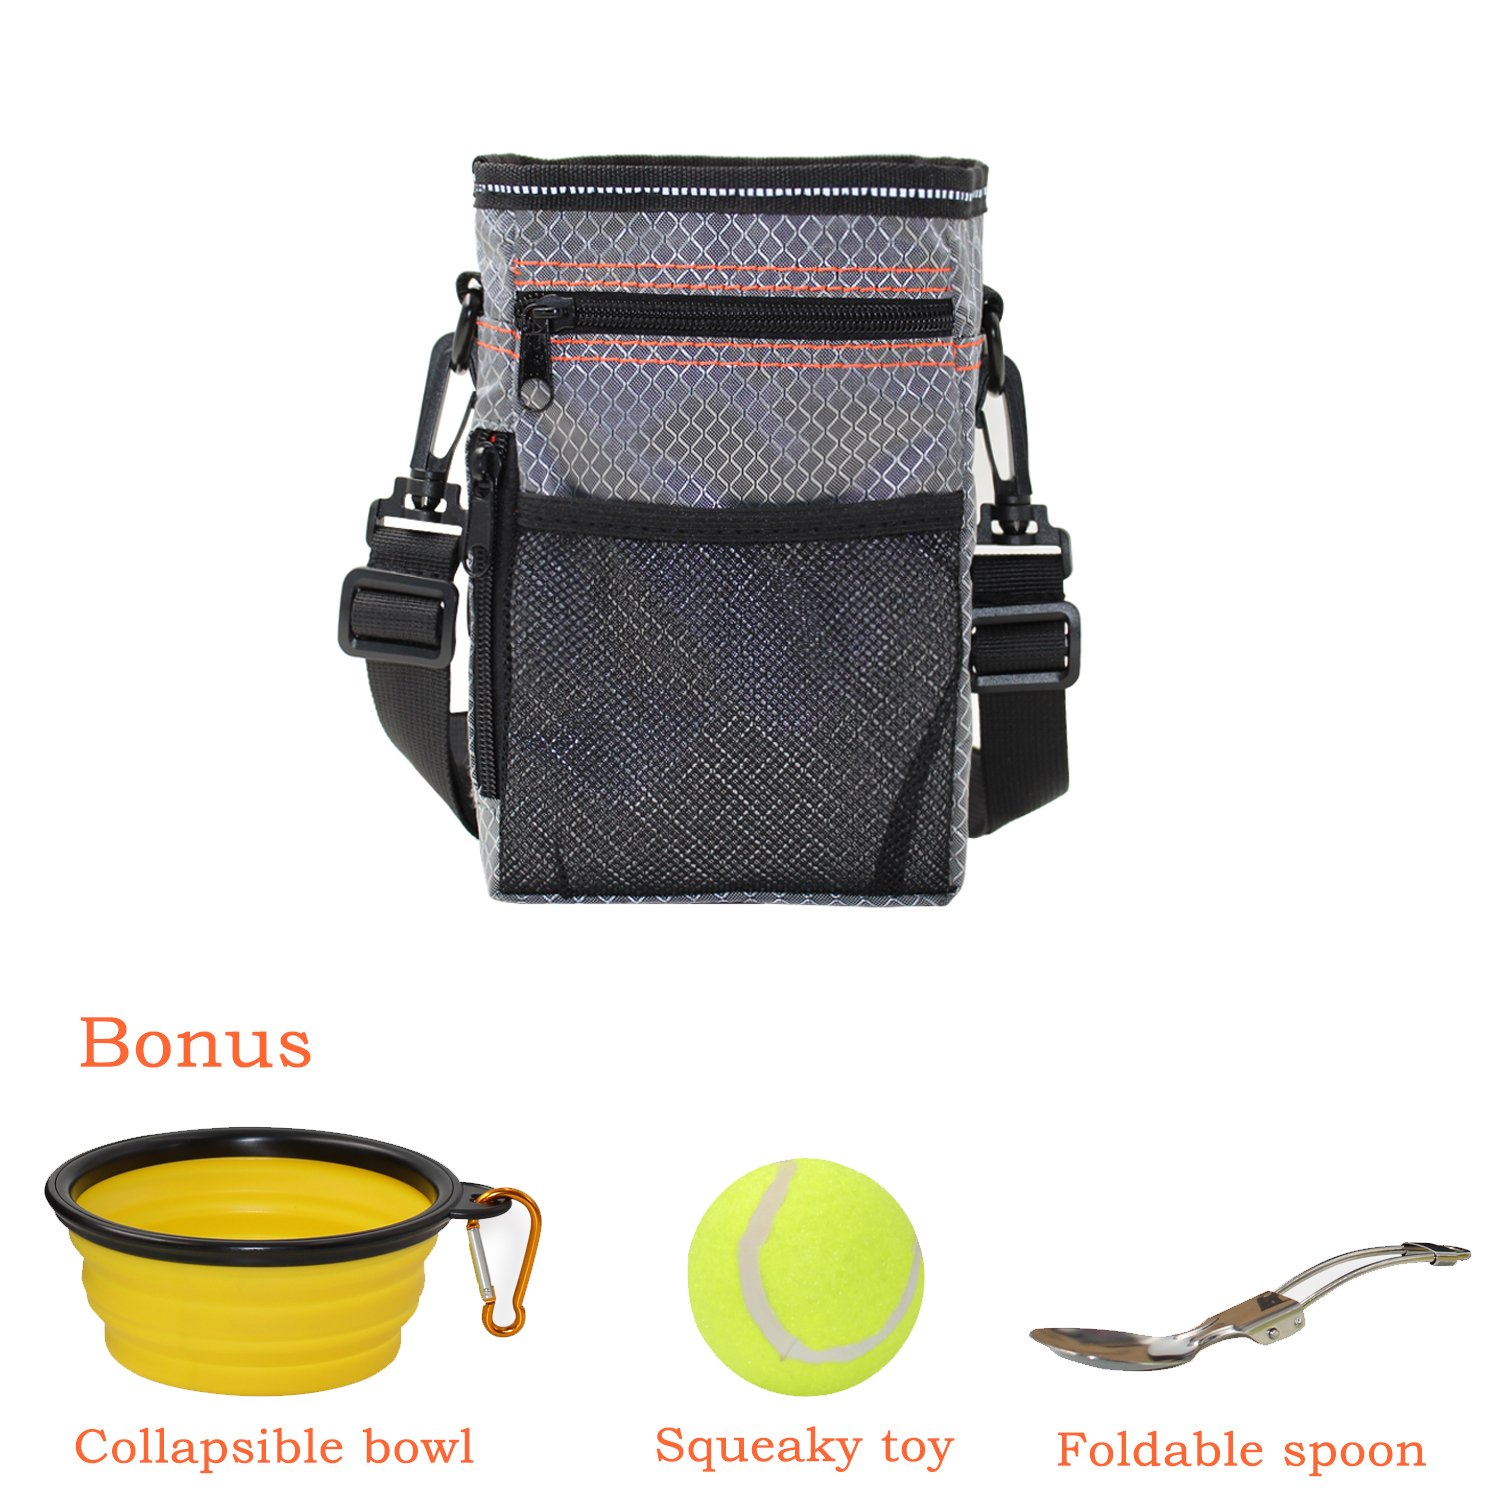 EJG Dog Treat Training Pouch Dog Training Oxford Bag with Extra Long Waist Belt and Over Shoulder Strap 3 Ways To Wear With Collapsible Bowl/ Foldable Spoon & Ball 4 In 1